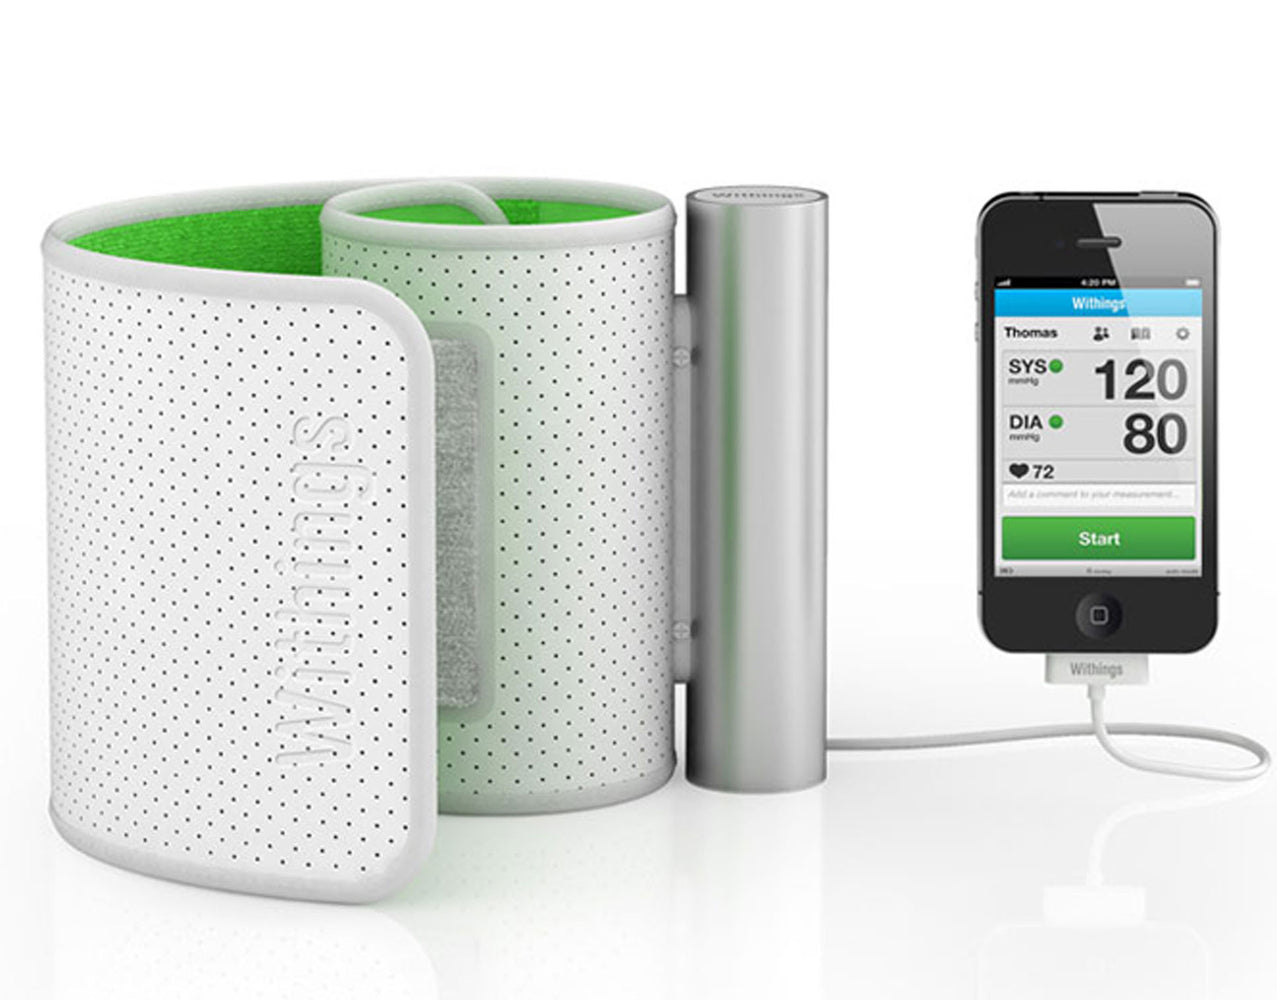 Withings Blood Pressure Monitor for iPhone, iPad and iPod touch